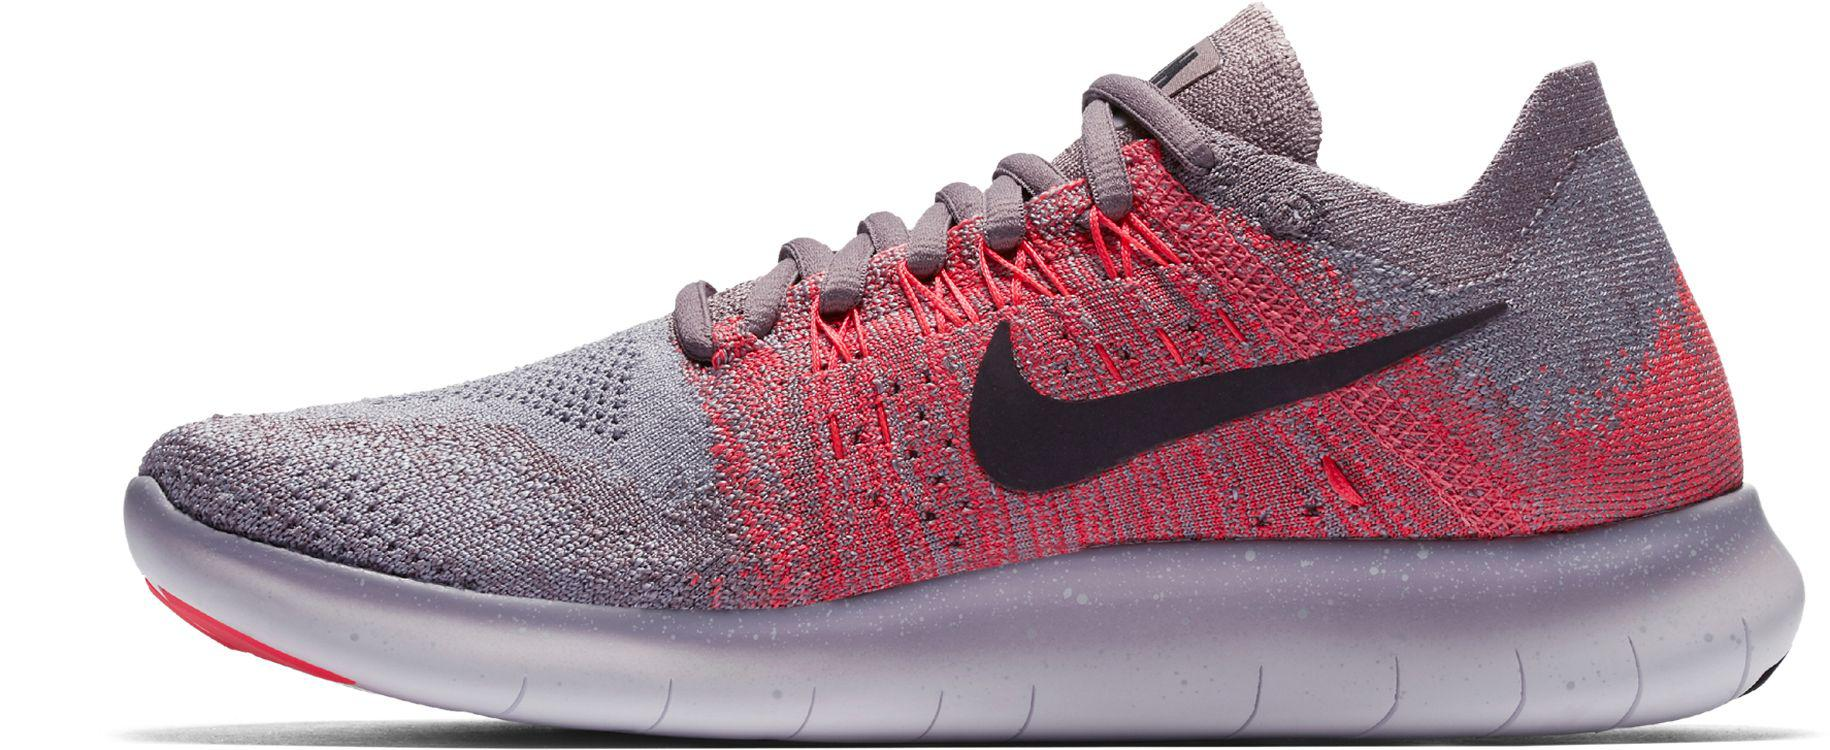 9003693d8baa Nike - Multicolor Free Rn Flyknit 2017 Running Shoes - Lyst